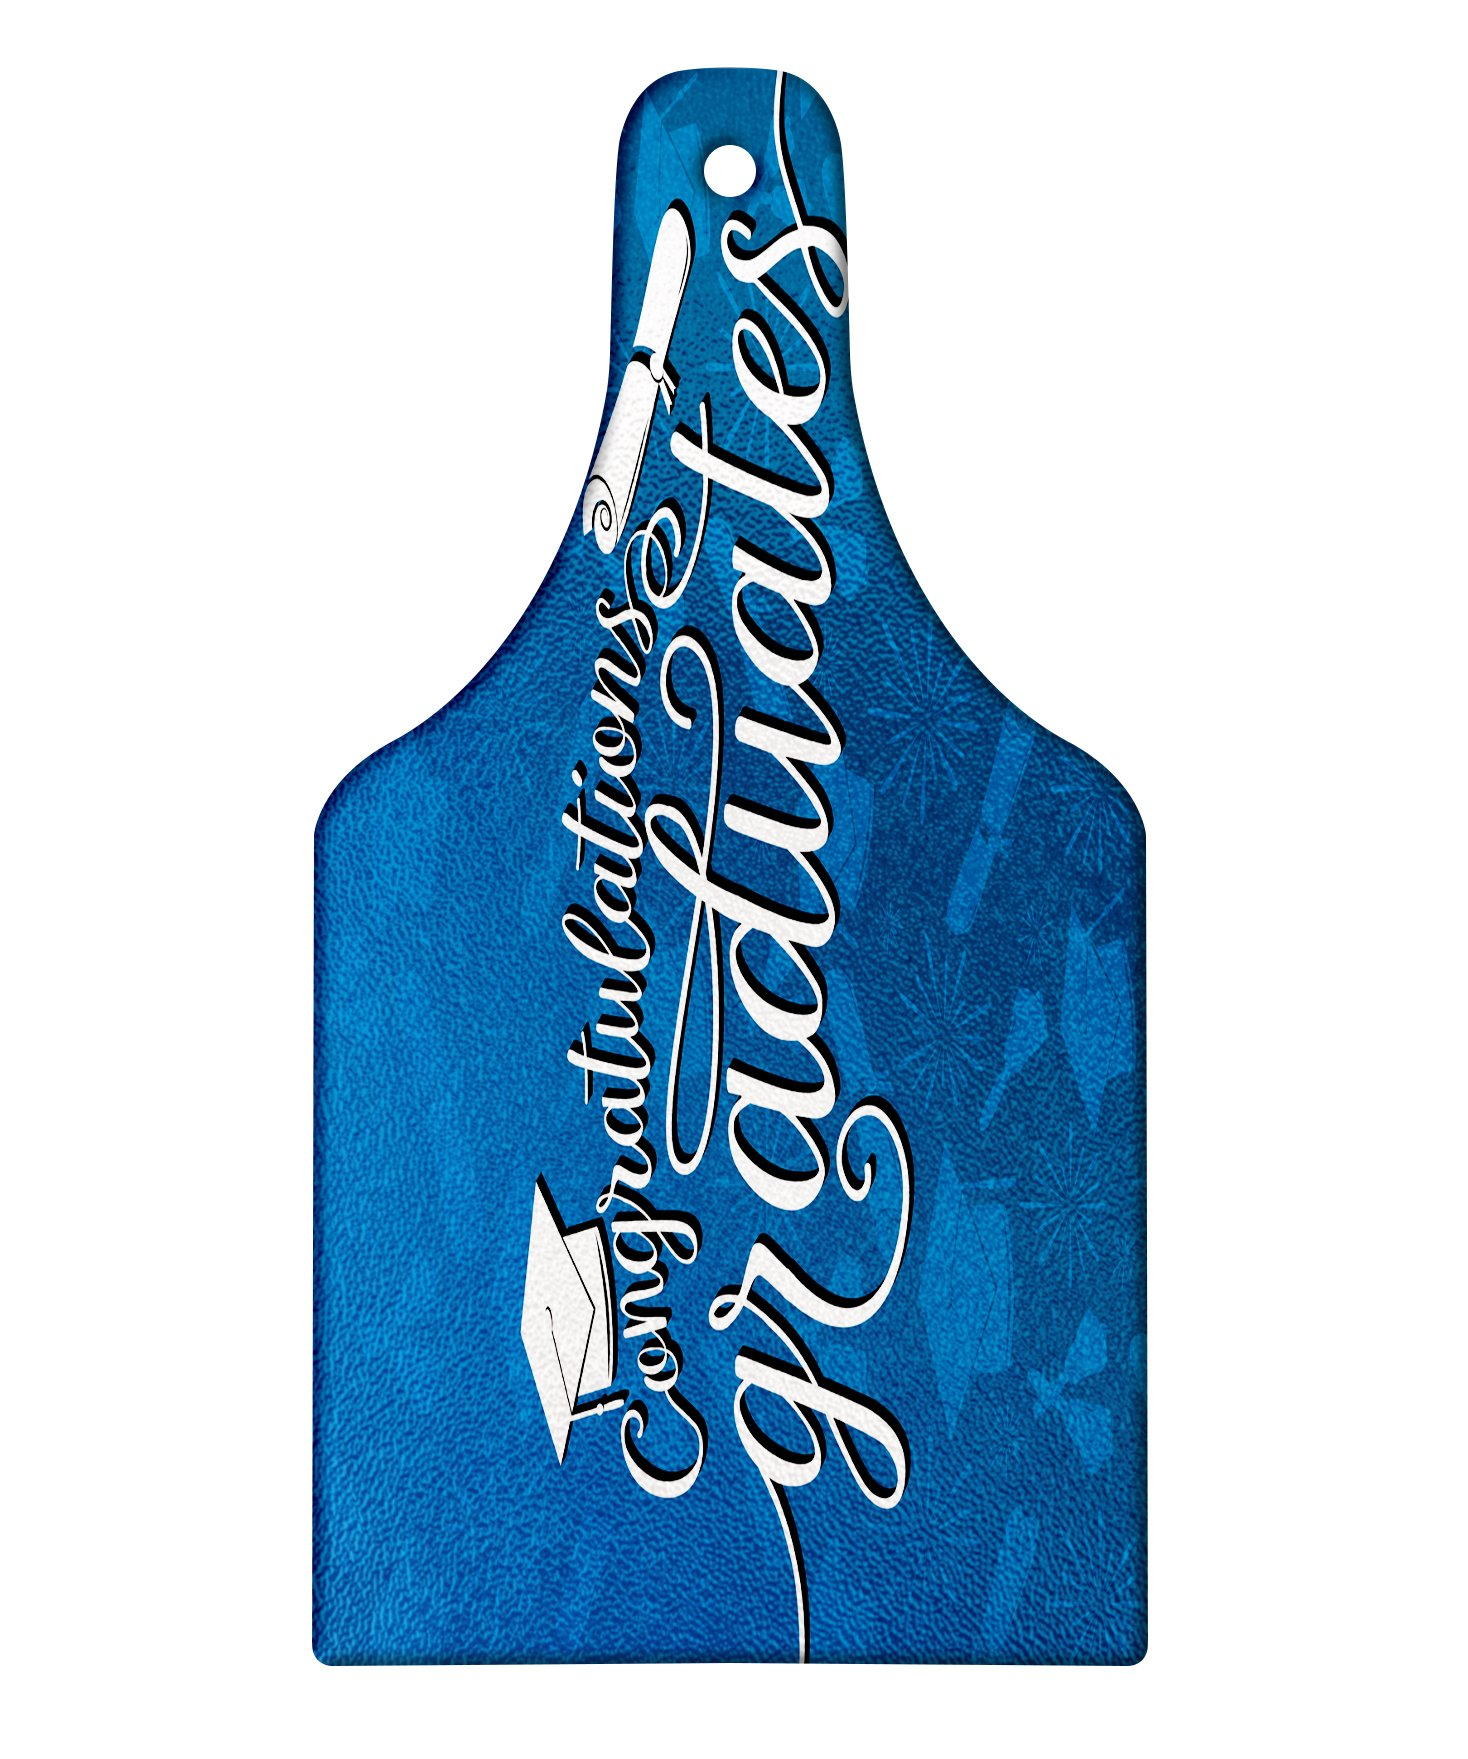 Lunarable Graduation Cutting Board, College Celebration Ceremony Certificate Diploma Square Academic Cap Print, Decorative Tempered Glass Cutting and Serving Board, Wine Bottle Shape, Blue and White